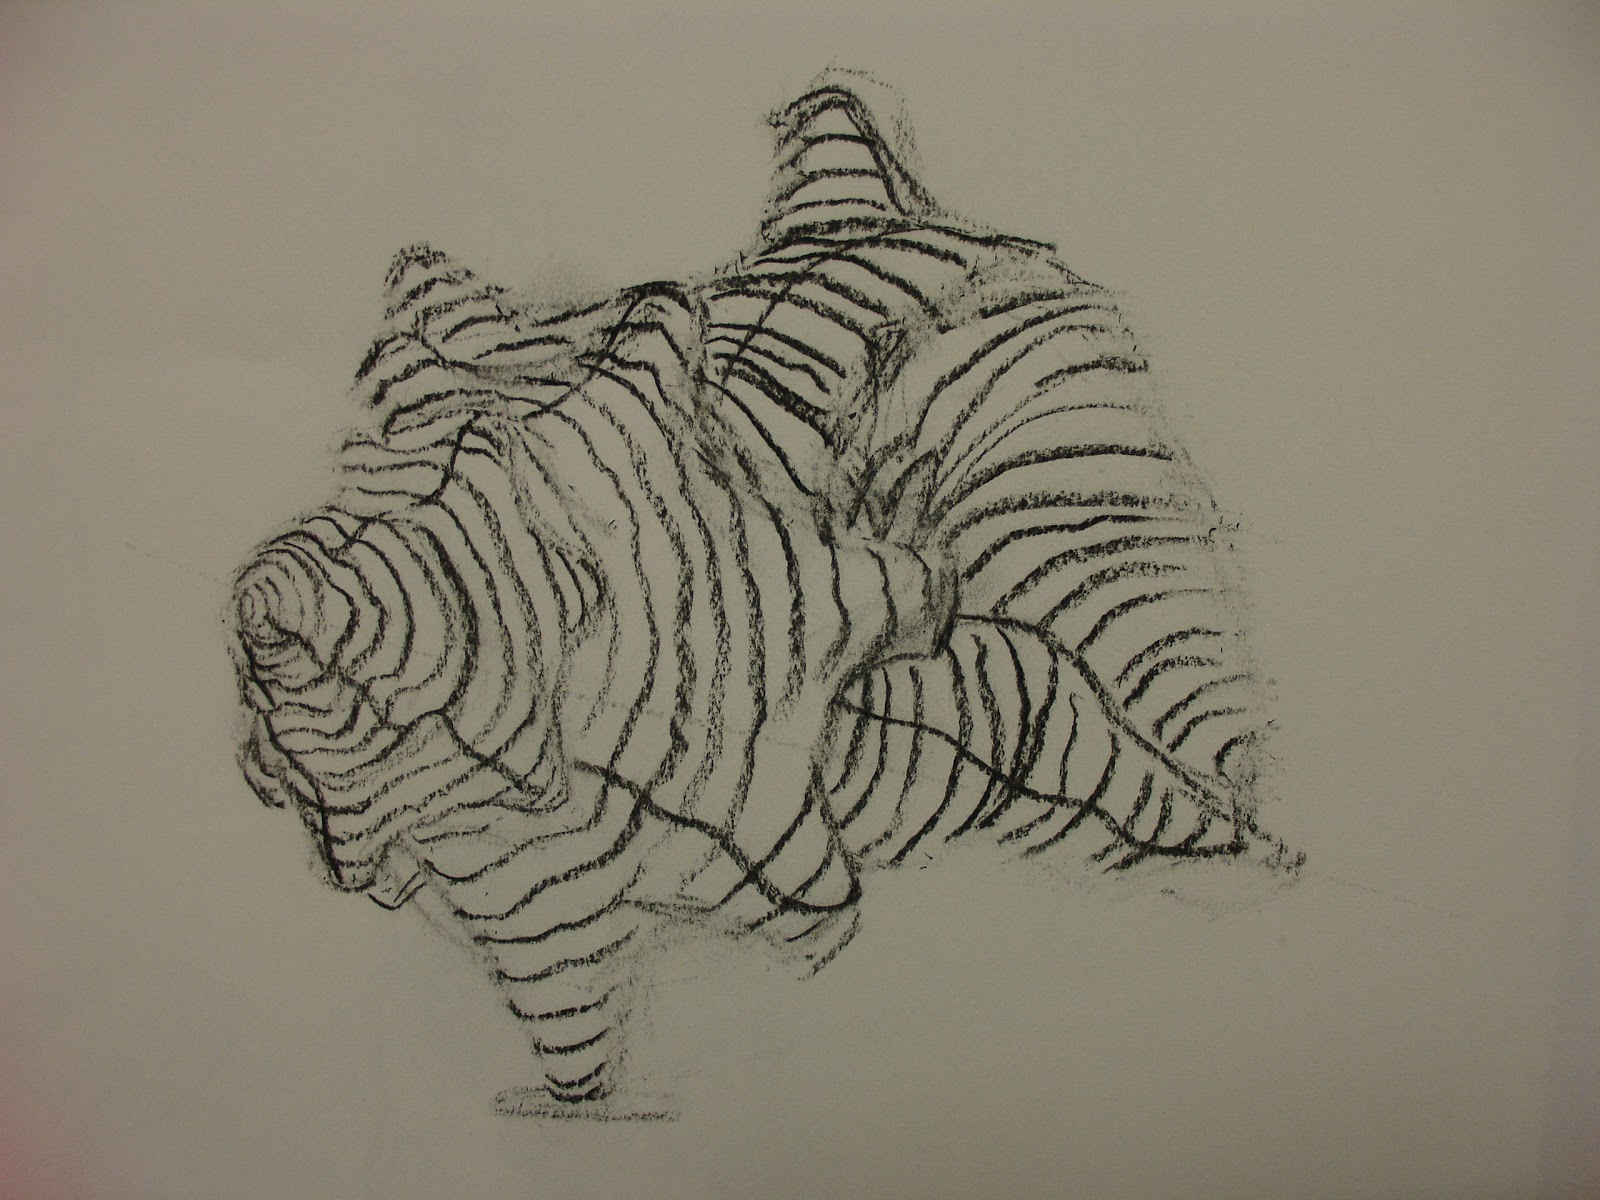 Uncategorized Shell Drawings shell drawings lessons tes teach rob 5 apart from the drawings